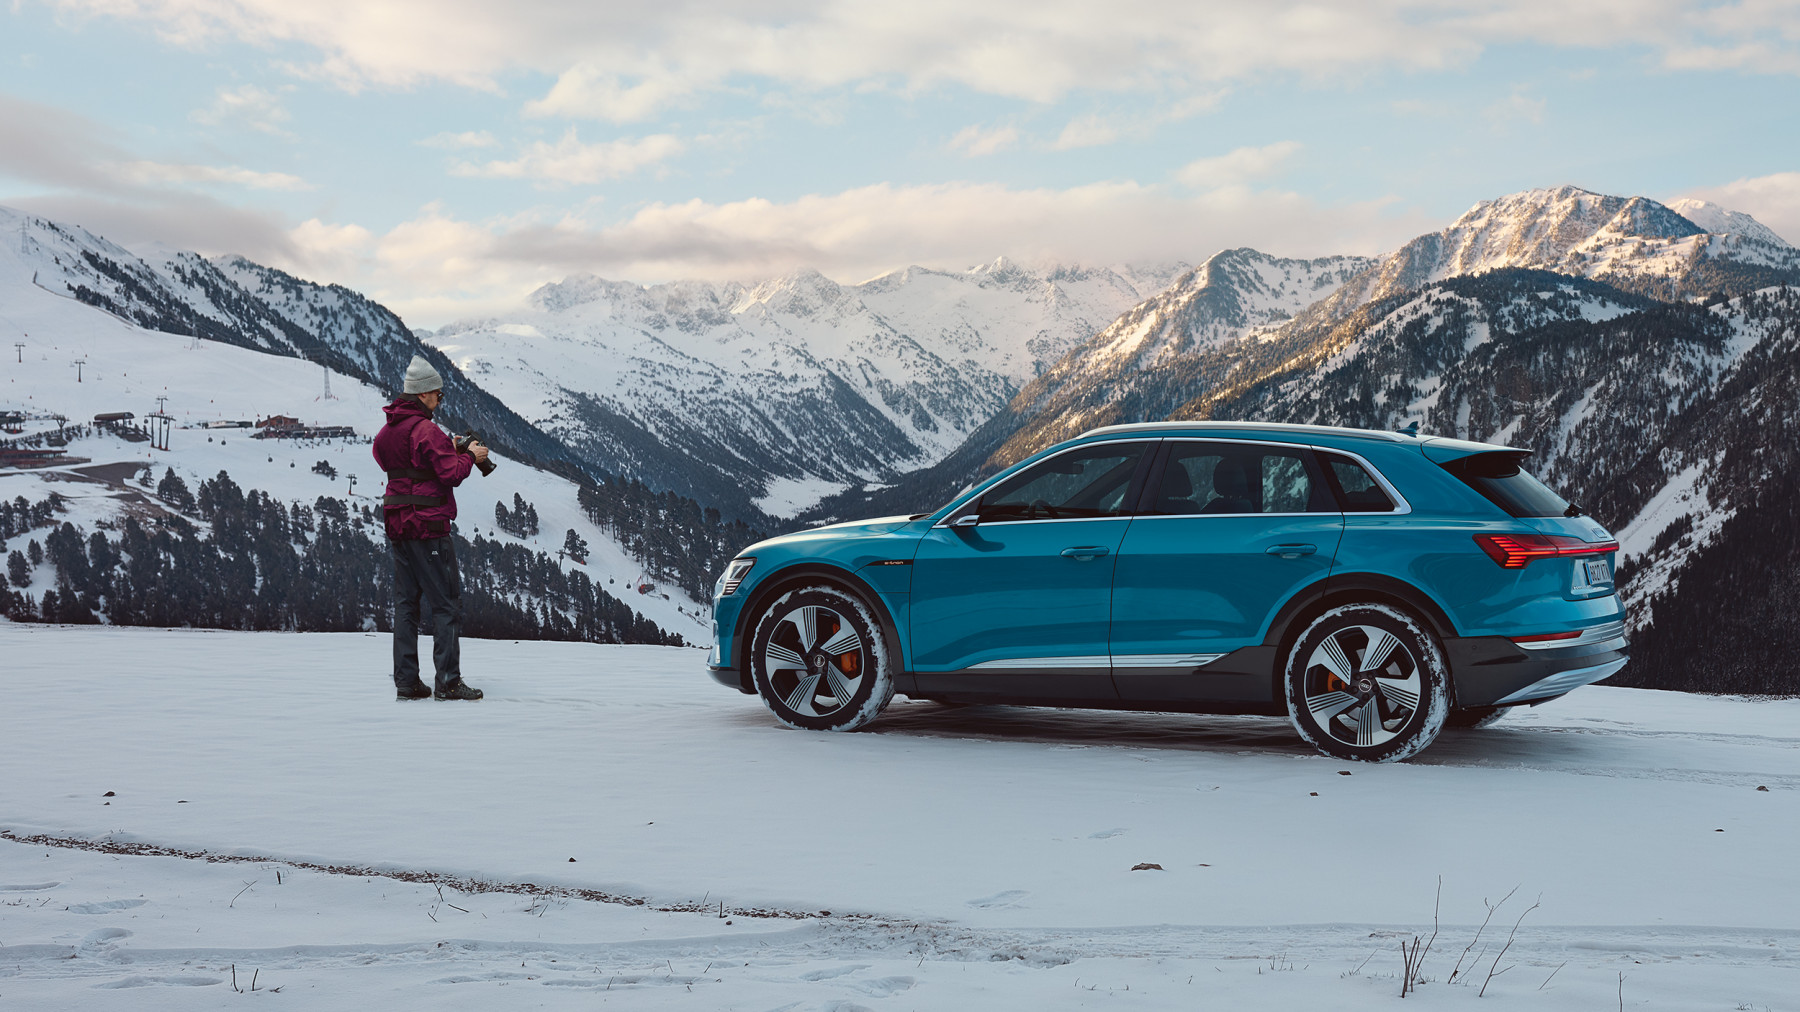 Audi E-Tron winter Barcelona to Baqueira Beret spread